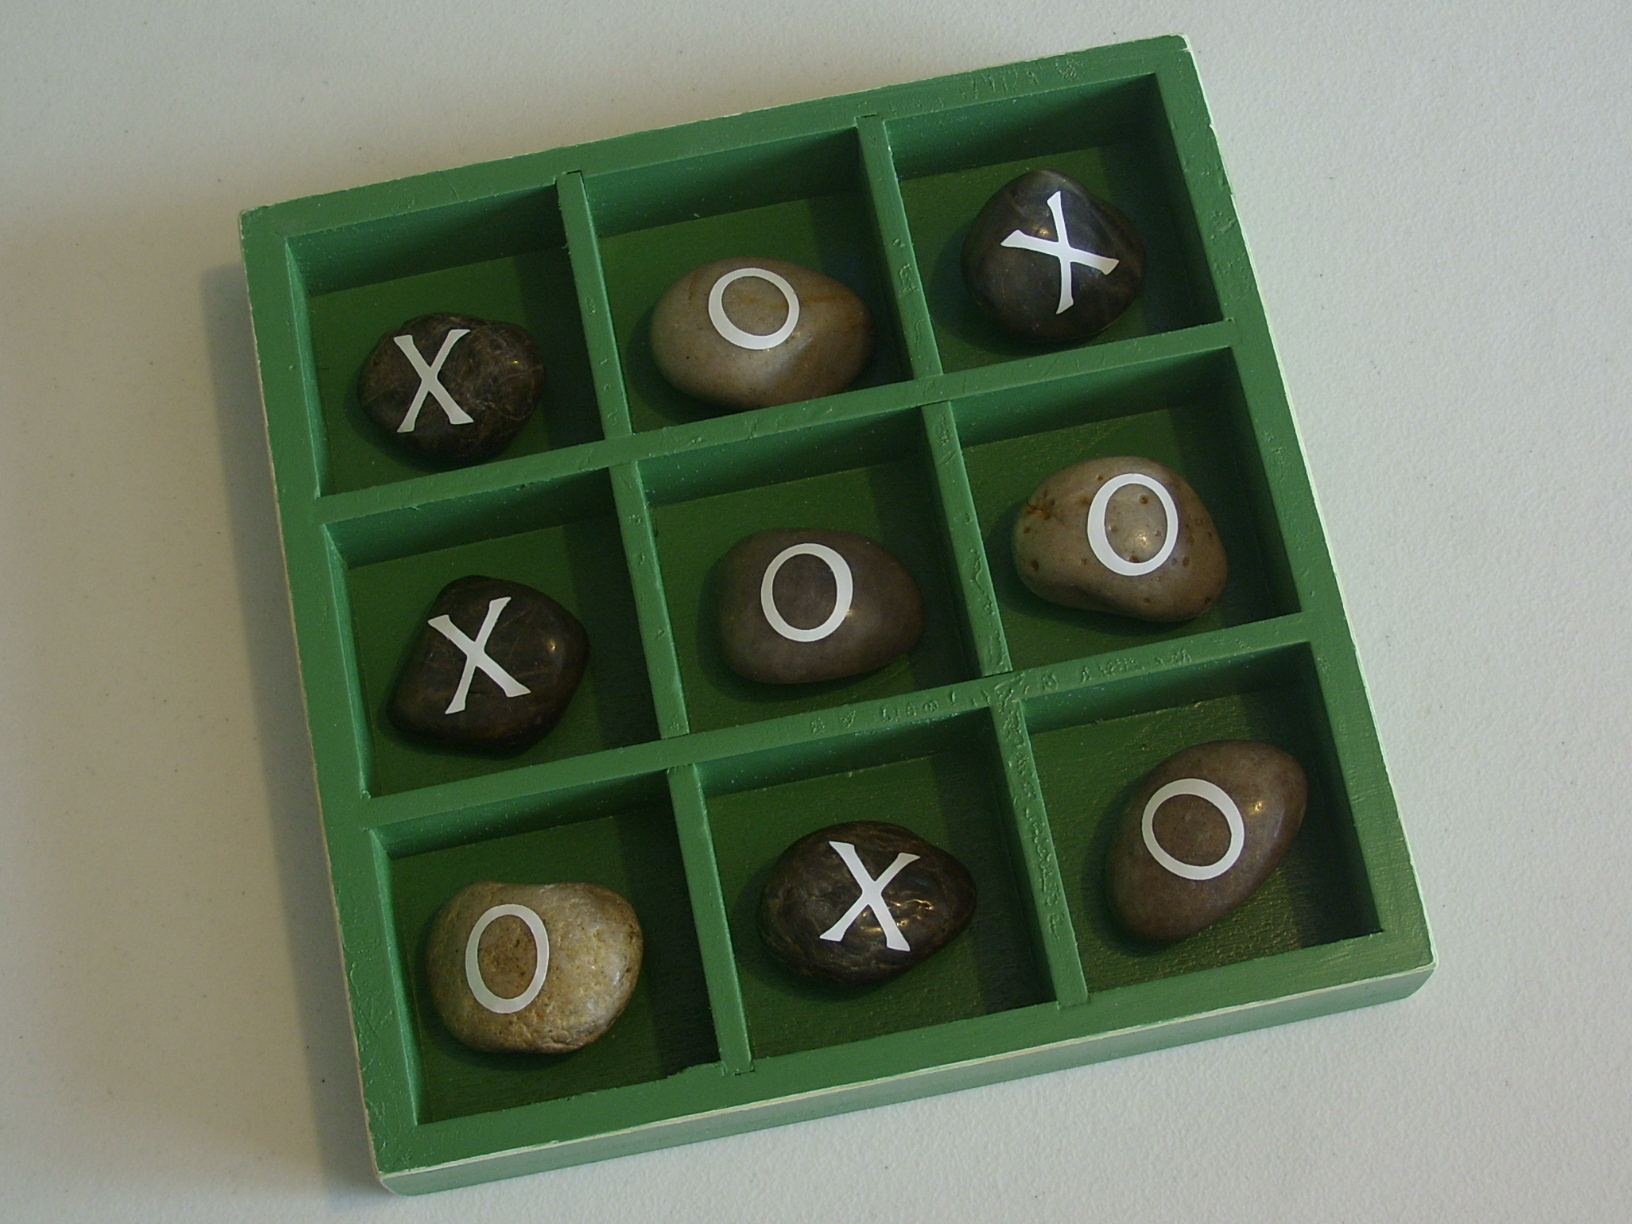 tic tac toe rocks